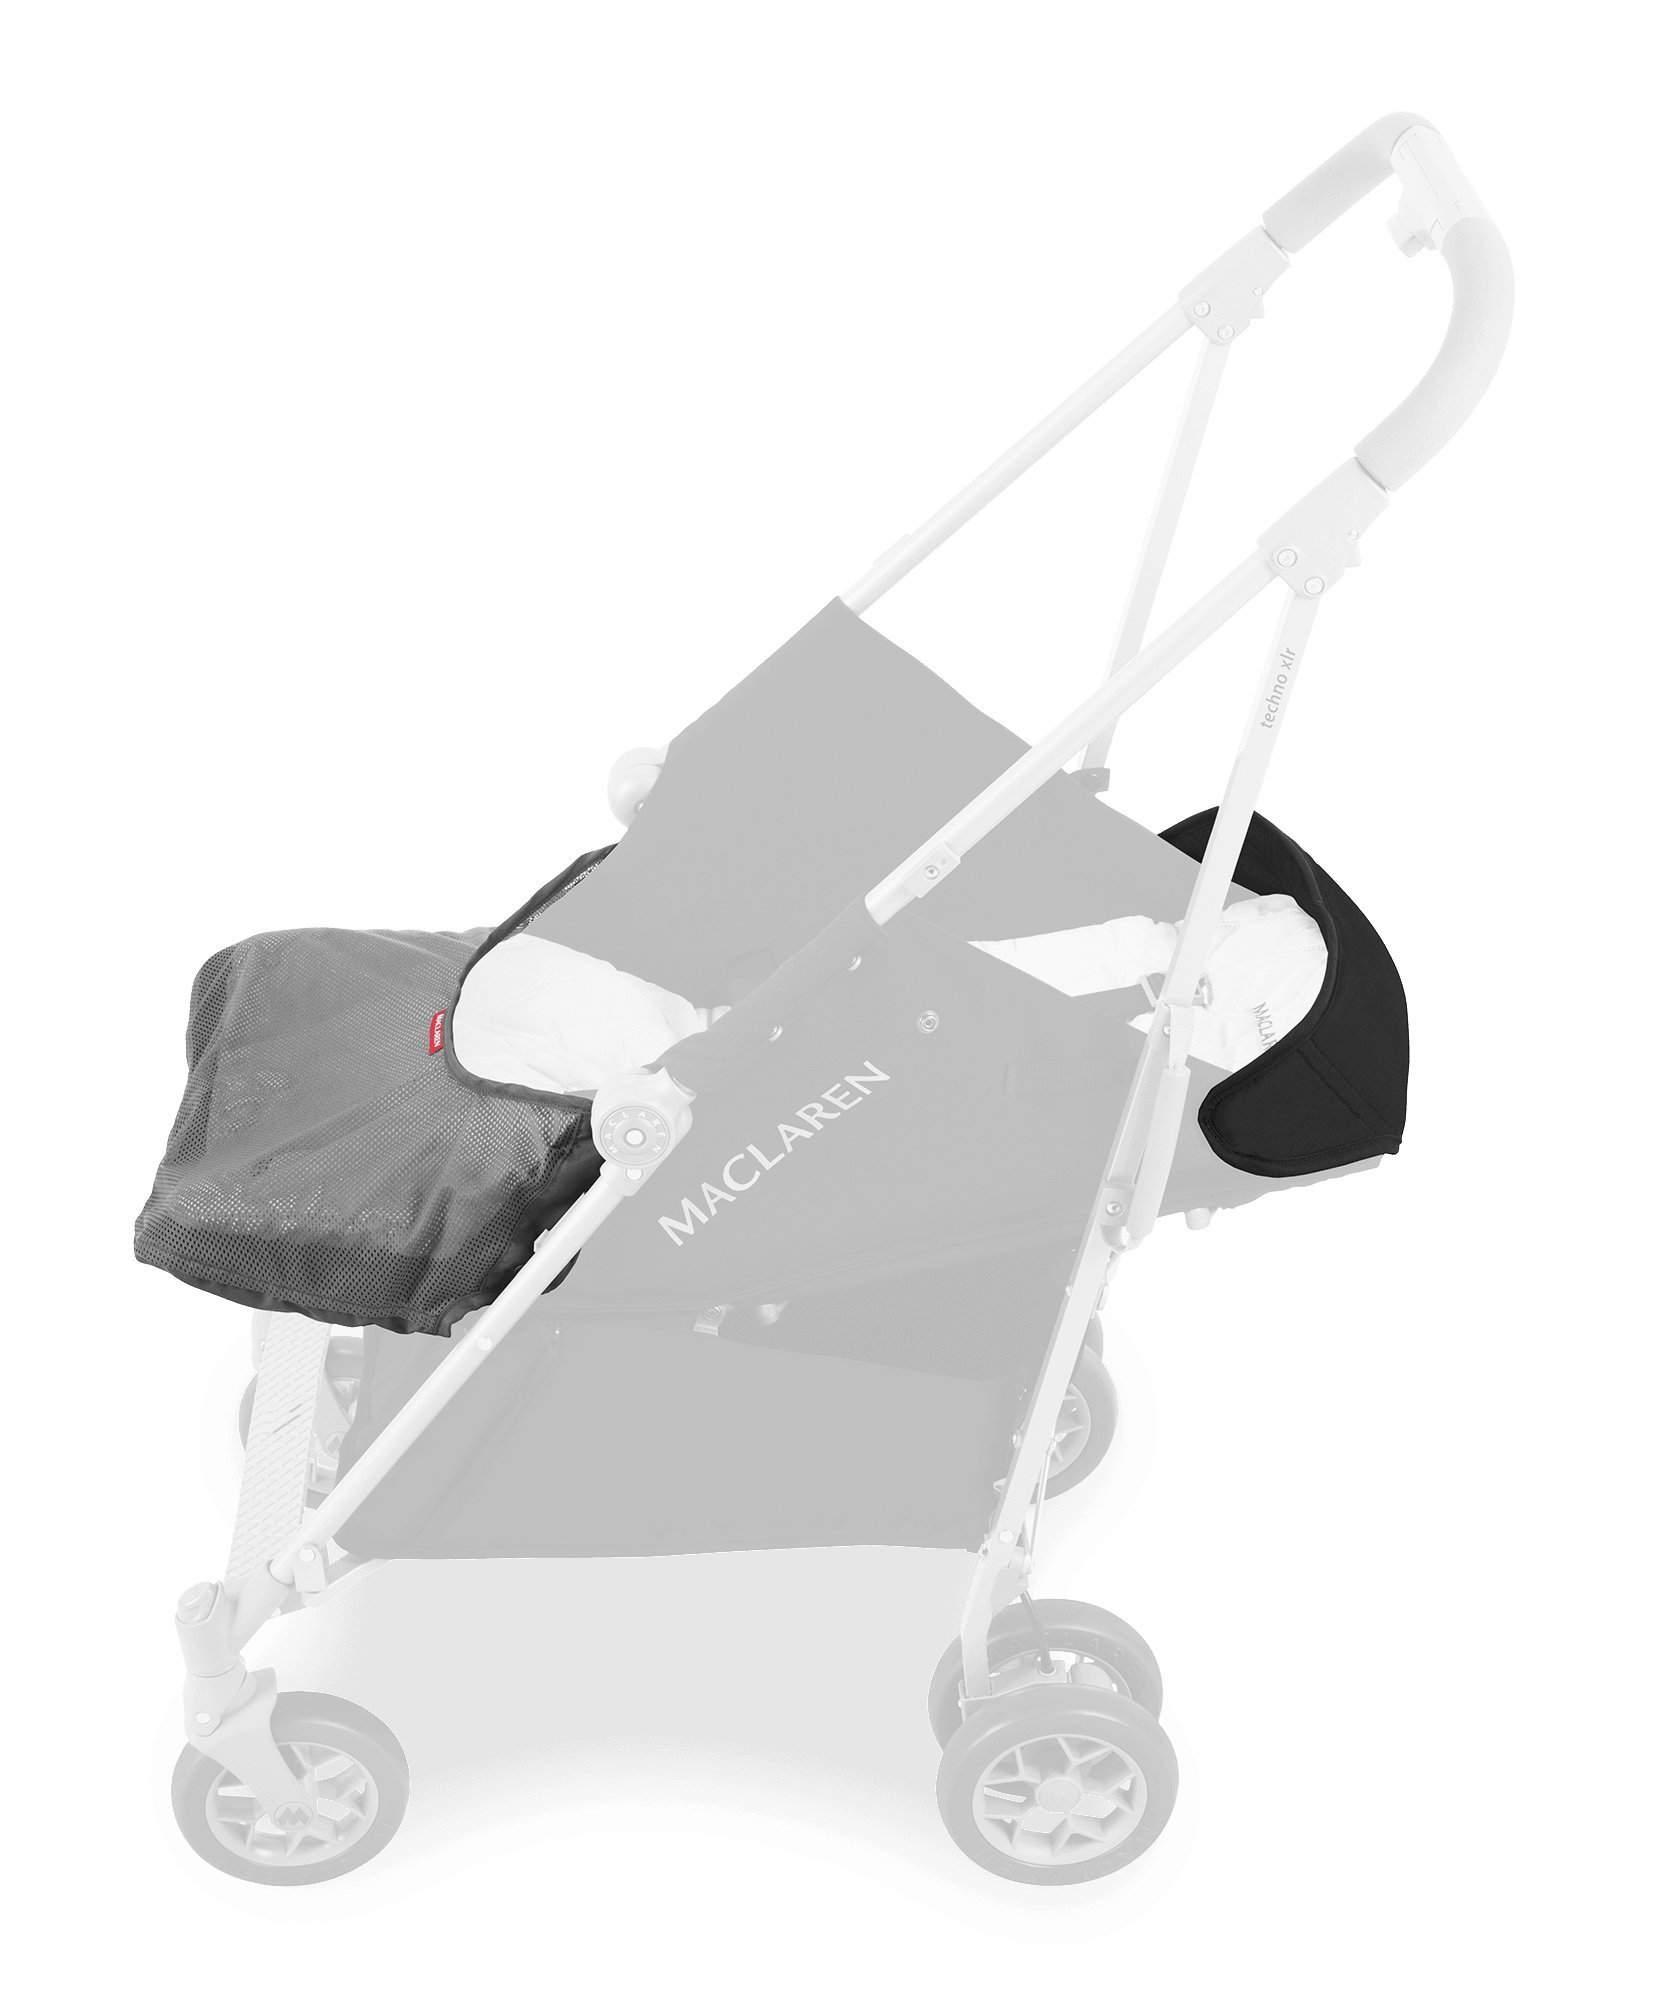 Maclaren Techno XLR arc Travel System Stroller Maclaren Basic weight of 6.7kg/14.8lb; ideal for new-borns and children up to 25kg/55lb (usa 65lb) Maclaren is the only brand to offer a sovereign lifetime warranty Extendable upf 50+ sun canopy and built-in sun visor 6